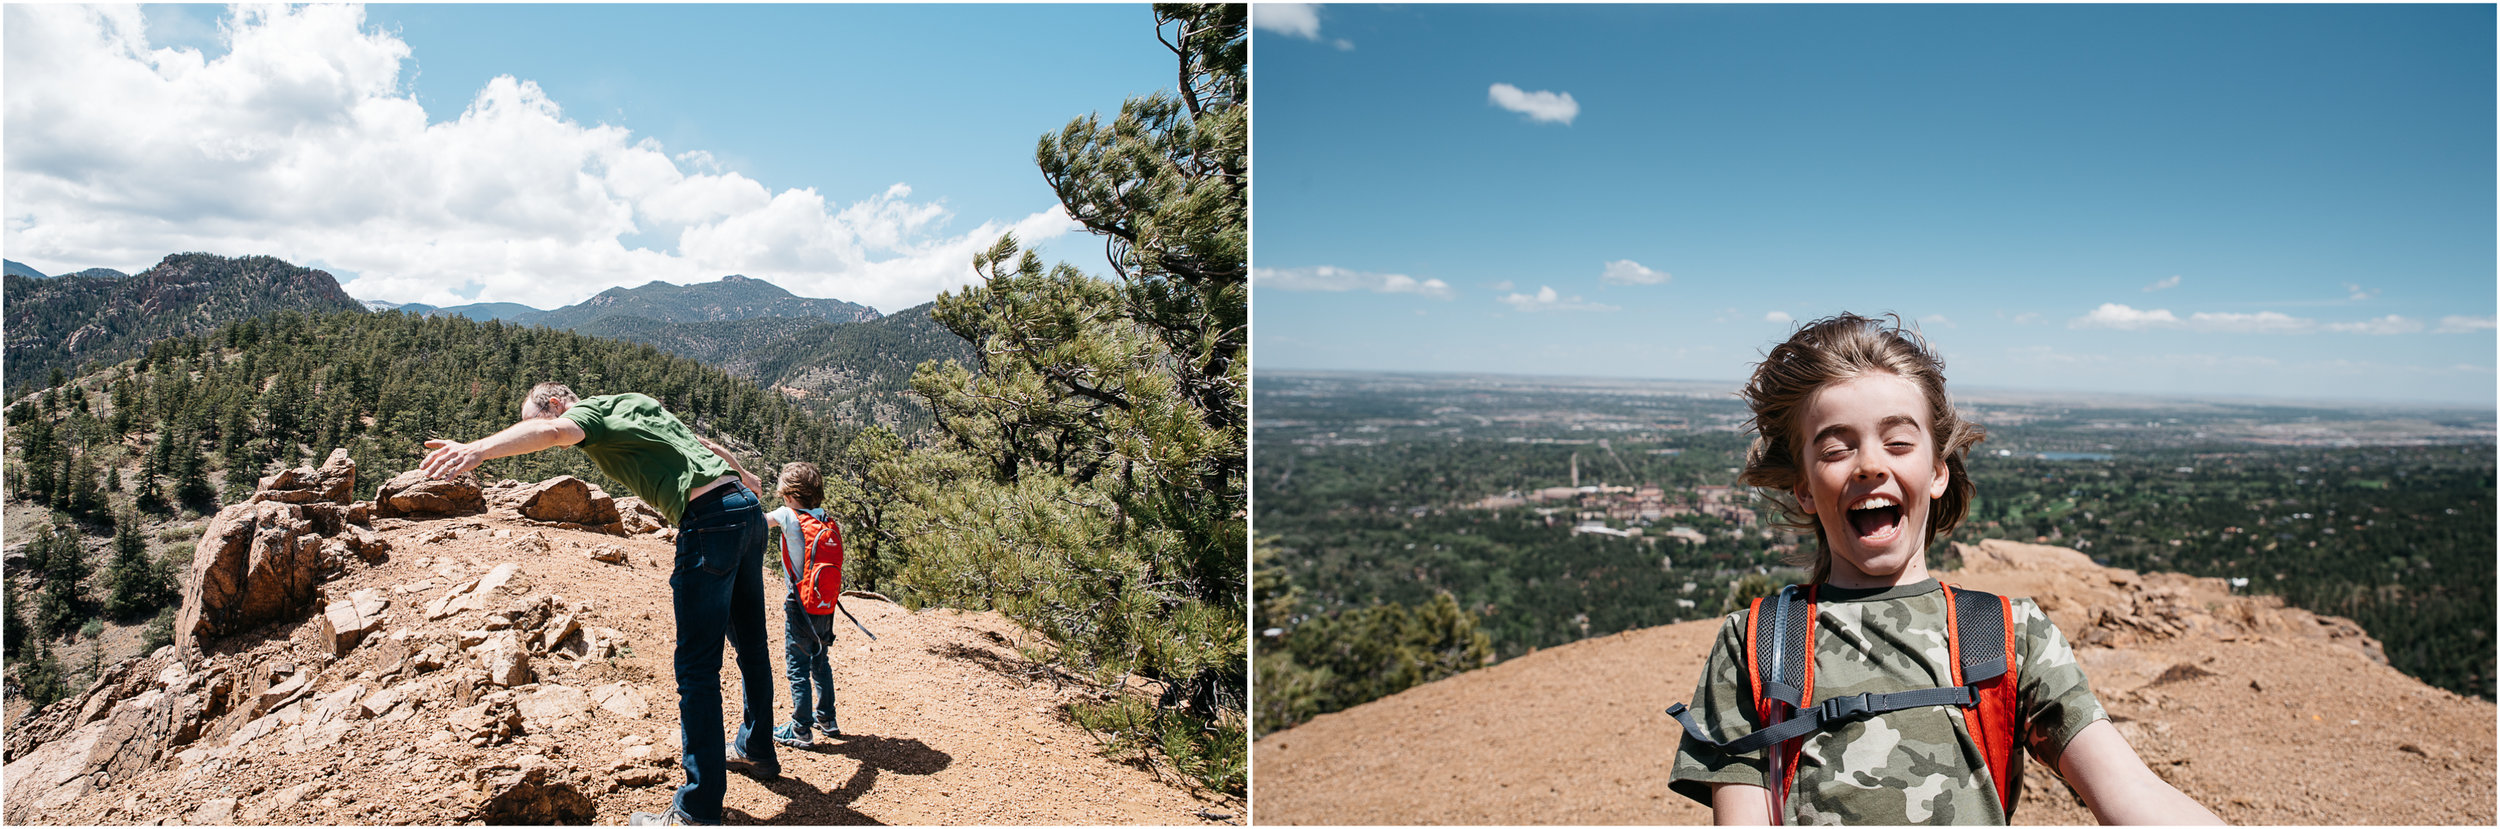 Cheyenne Mountain, windy hiking, Cutler hiking trail Colorado Springs CO.jpg